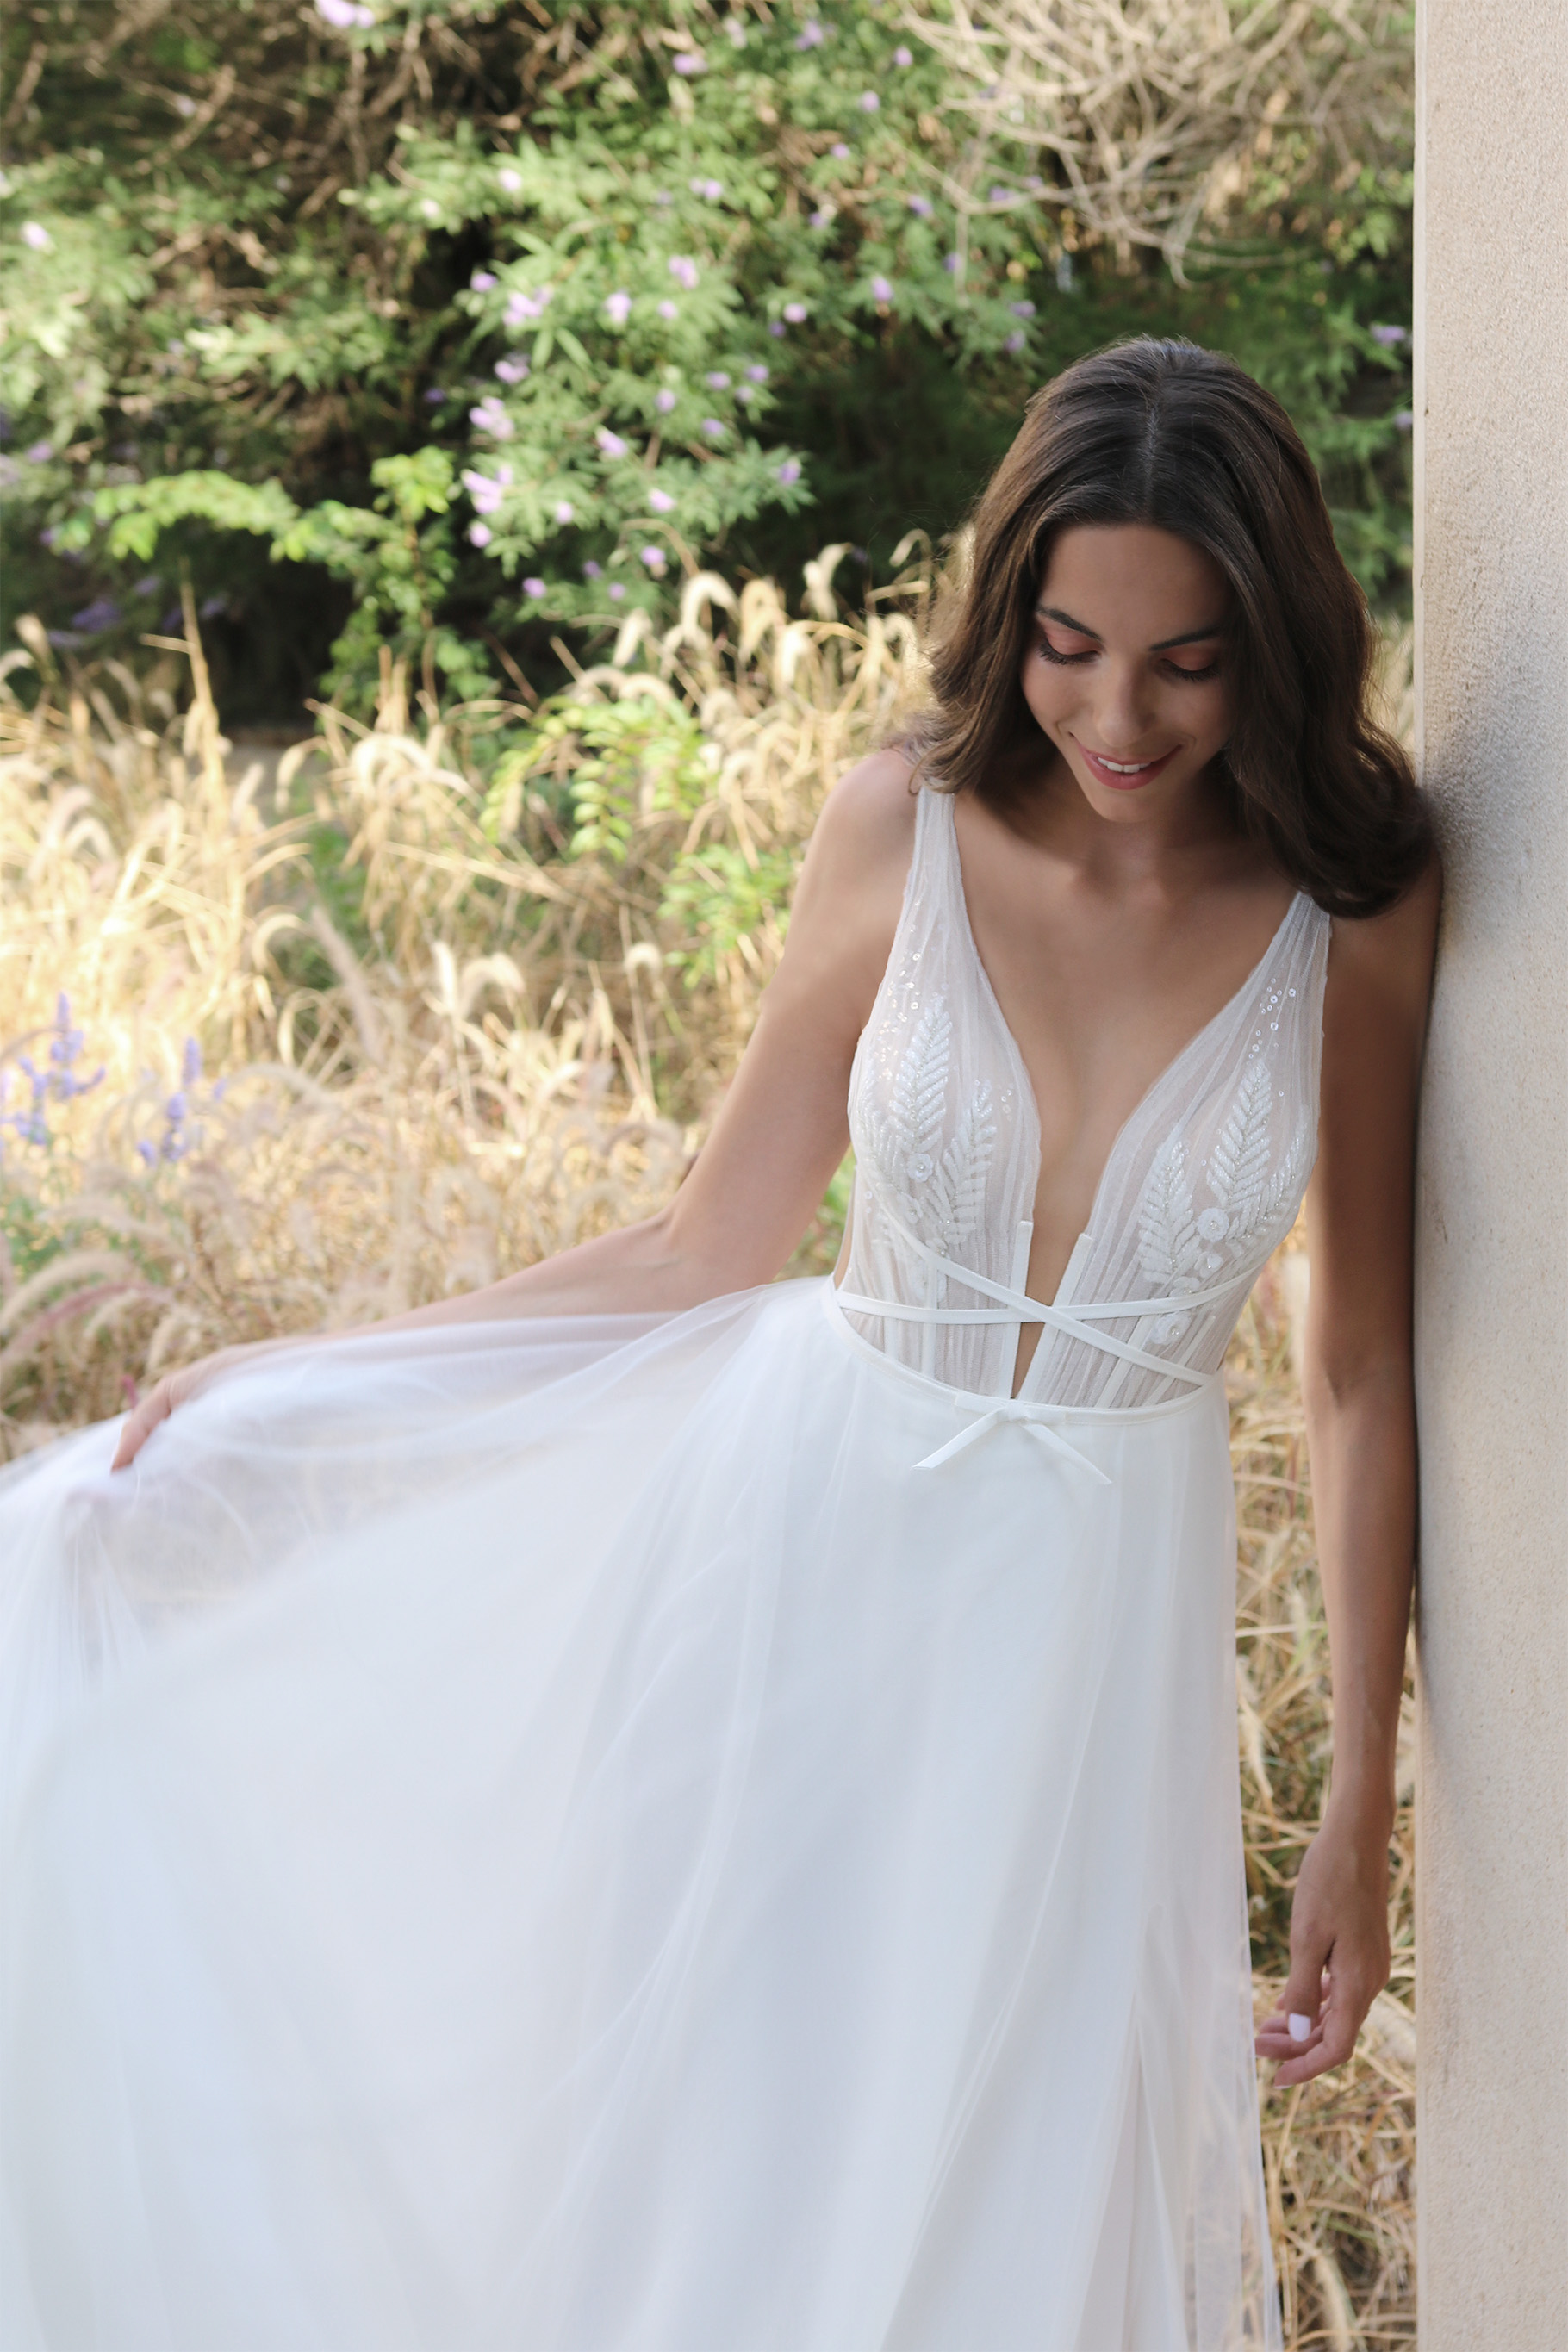 121-The MUSK Collection ELISH Bridal - 2